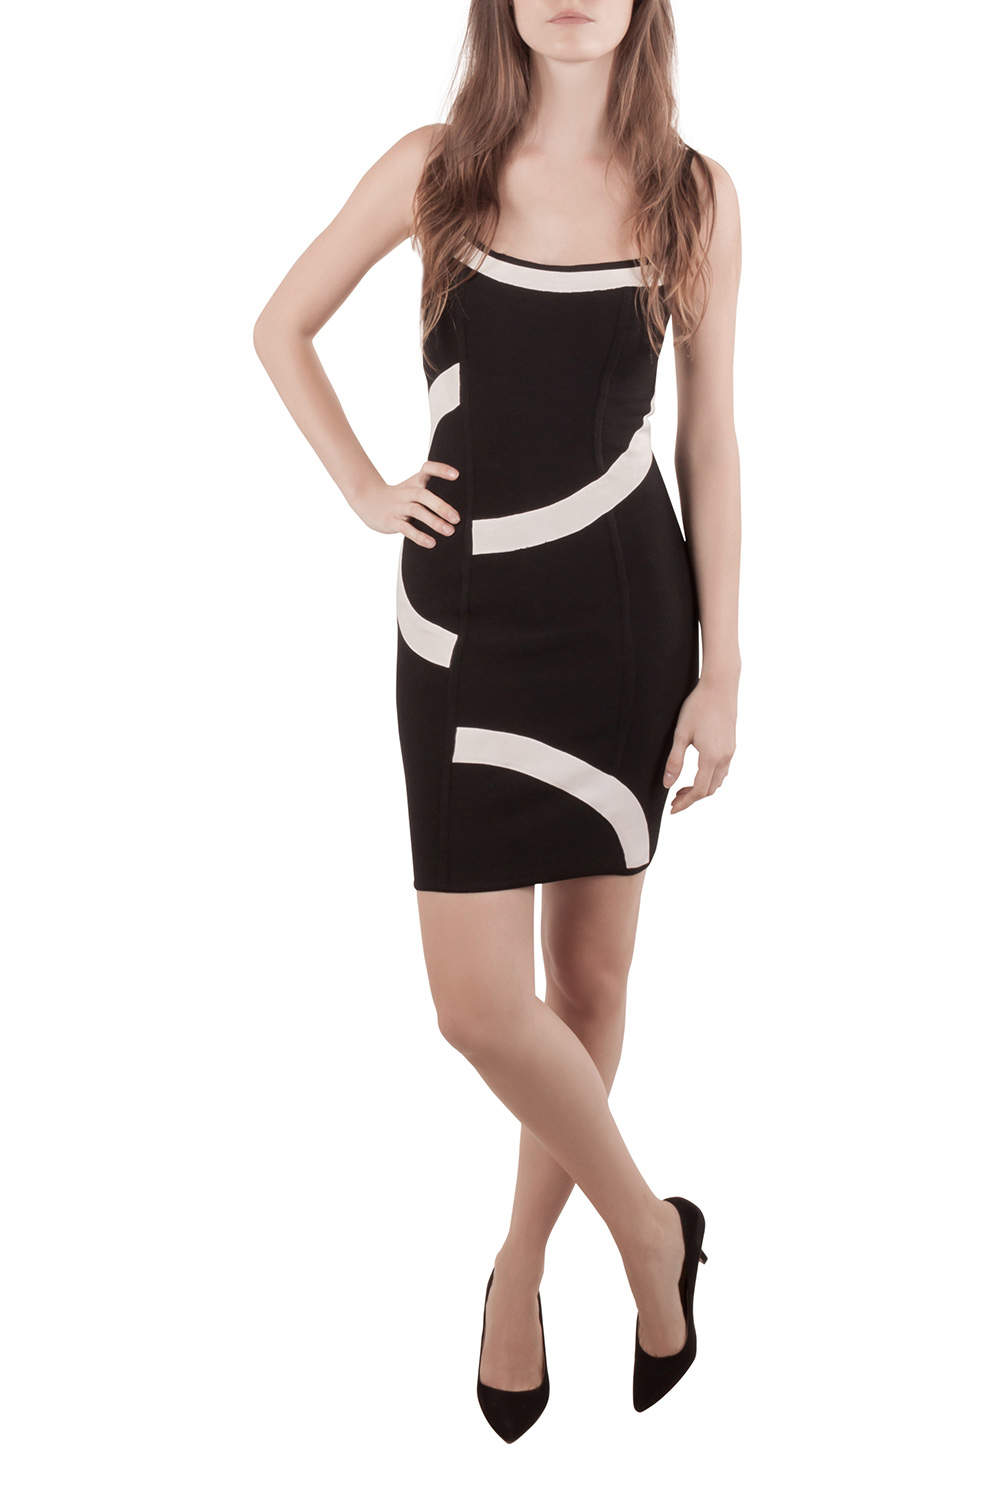 Herve Leger Monochrome Patterned Knit Sleeveless Bandage Dress S